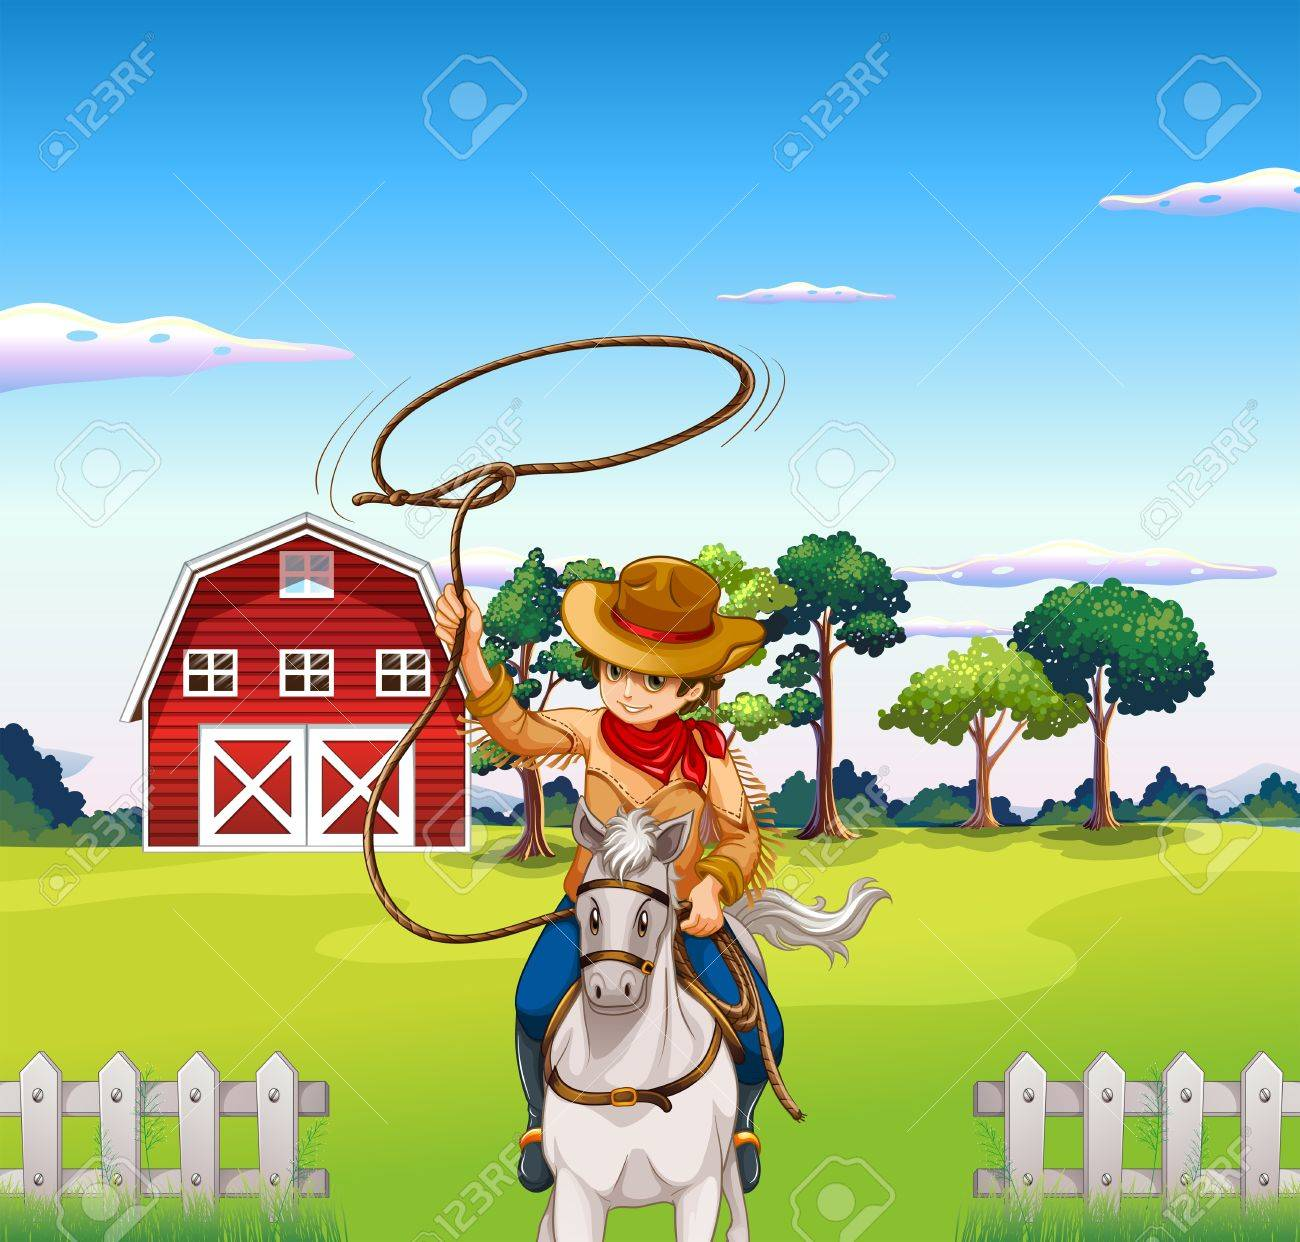 Illustration of a young cowboy in the ranch Stock Vector - 20366740